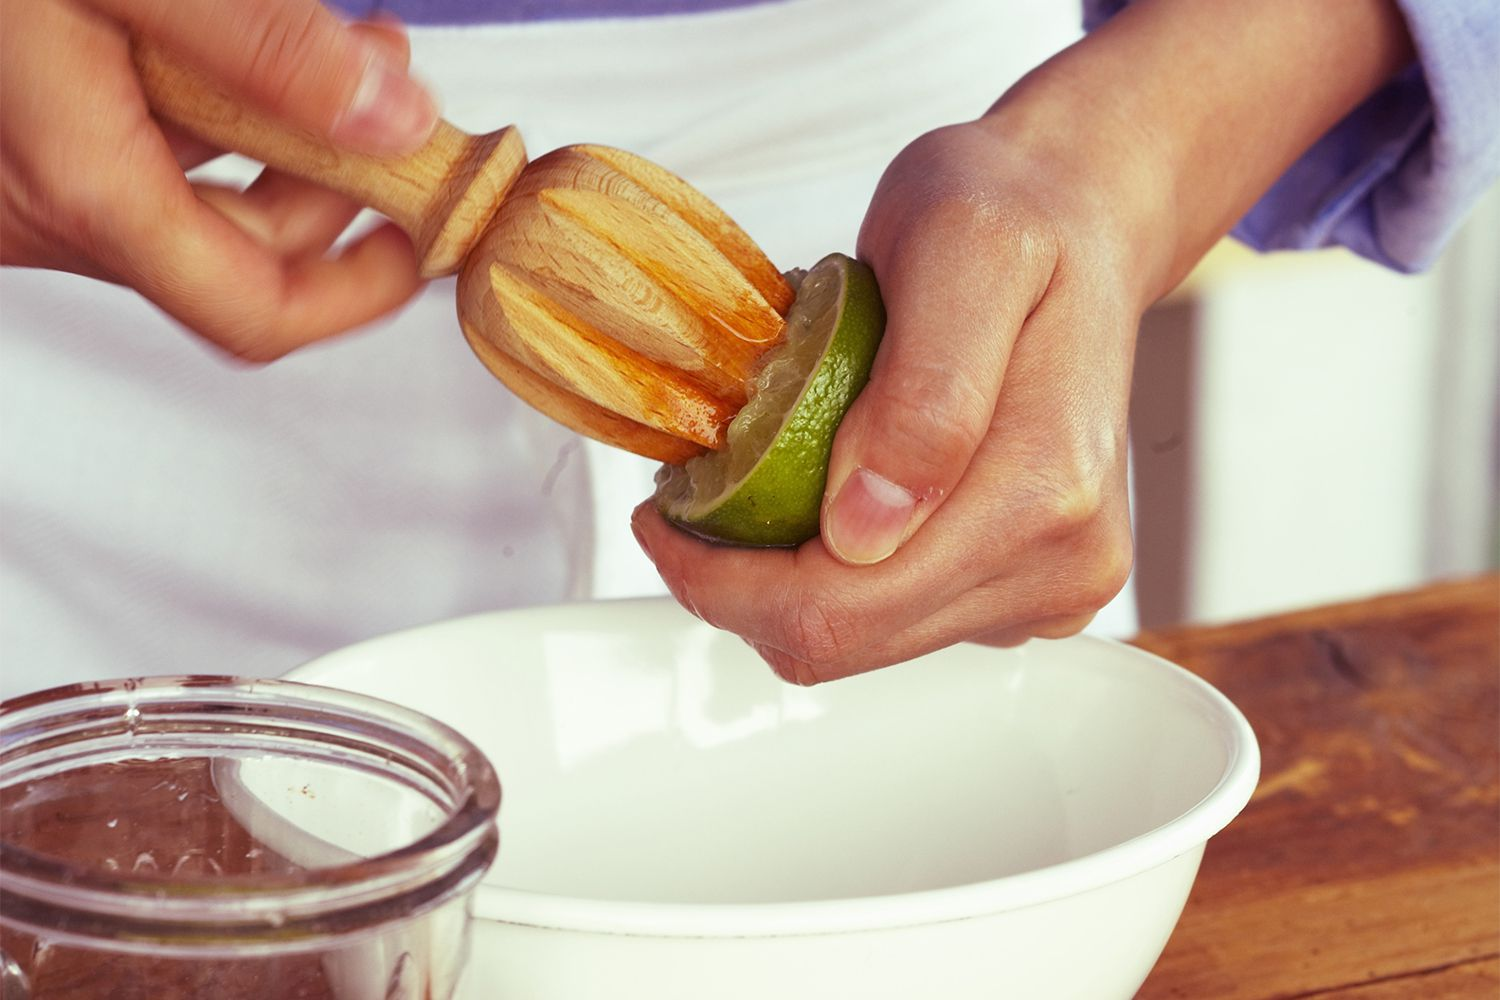 Use a citrus reamer to get fresh juice from fruits.